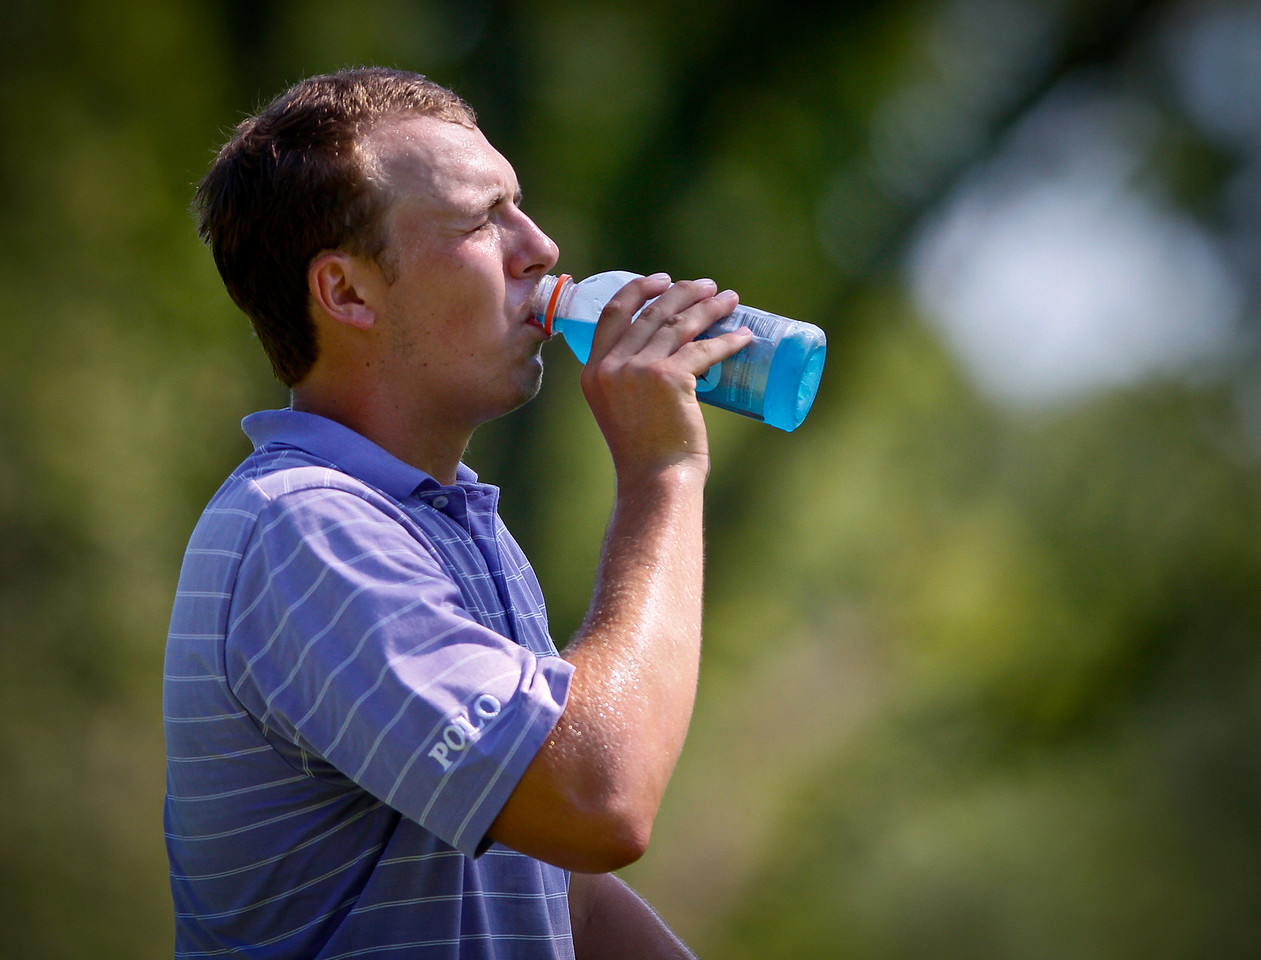 Jordan Spieth, 18, of Dallas, Texas, takes a drink of Gatorade during the fourth round on Thursday.